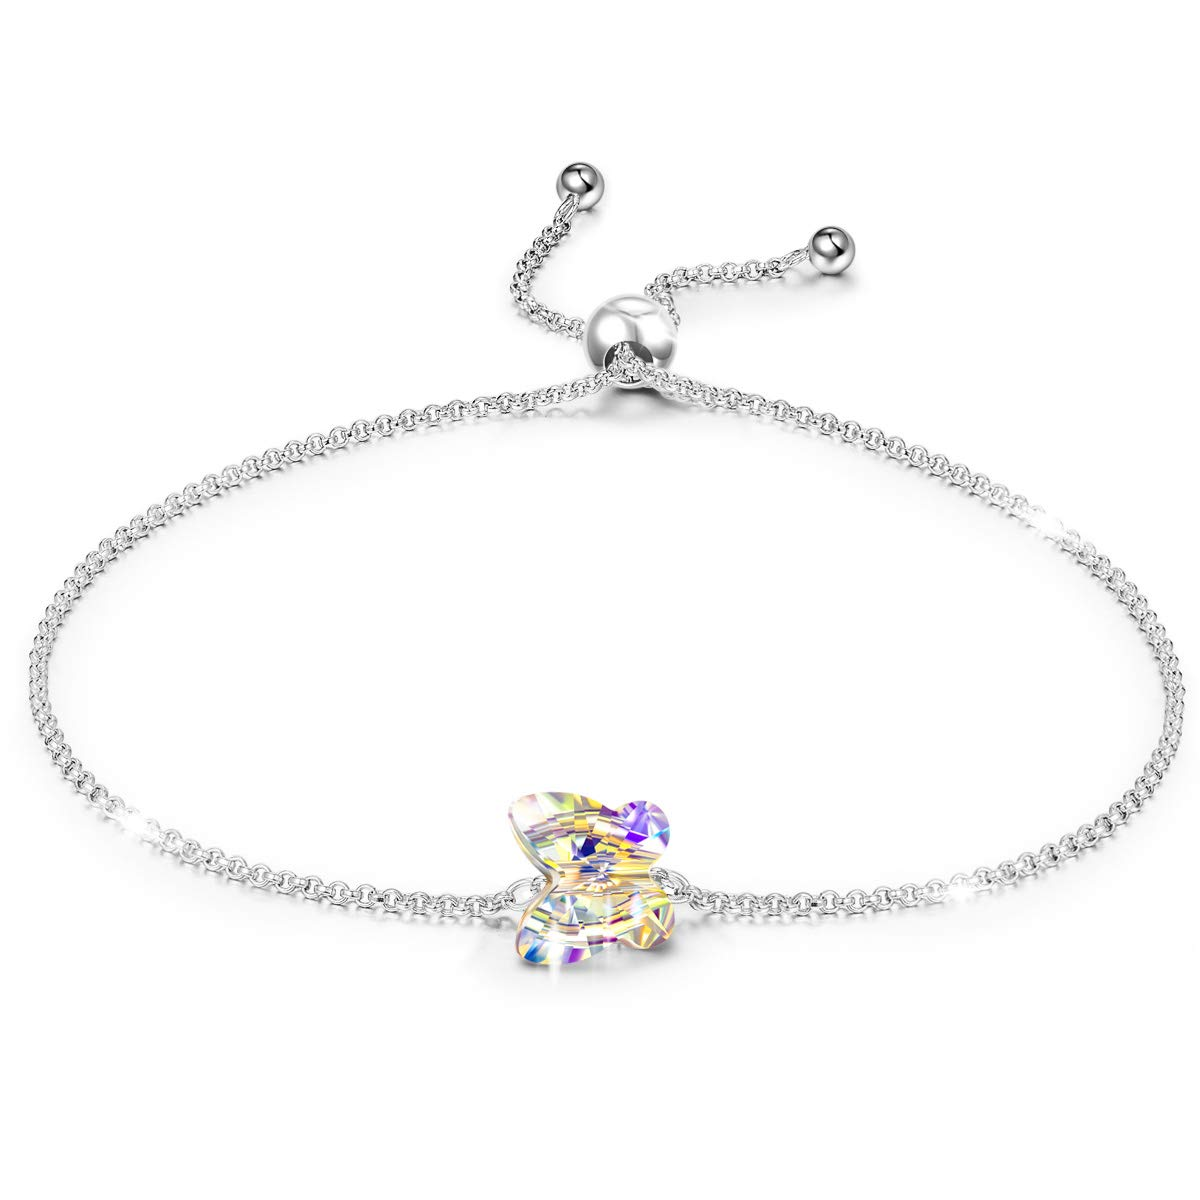 LADY COLOUR Bracelets Gifts for Girls 925 Sterling Silver Butterfly Bracelet Swarovski Crystal Fine Jewelry for Women Birthday Gifts for Women Teens Anniversary for Her Wife Daughter